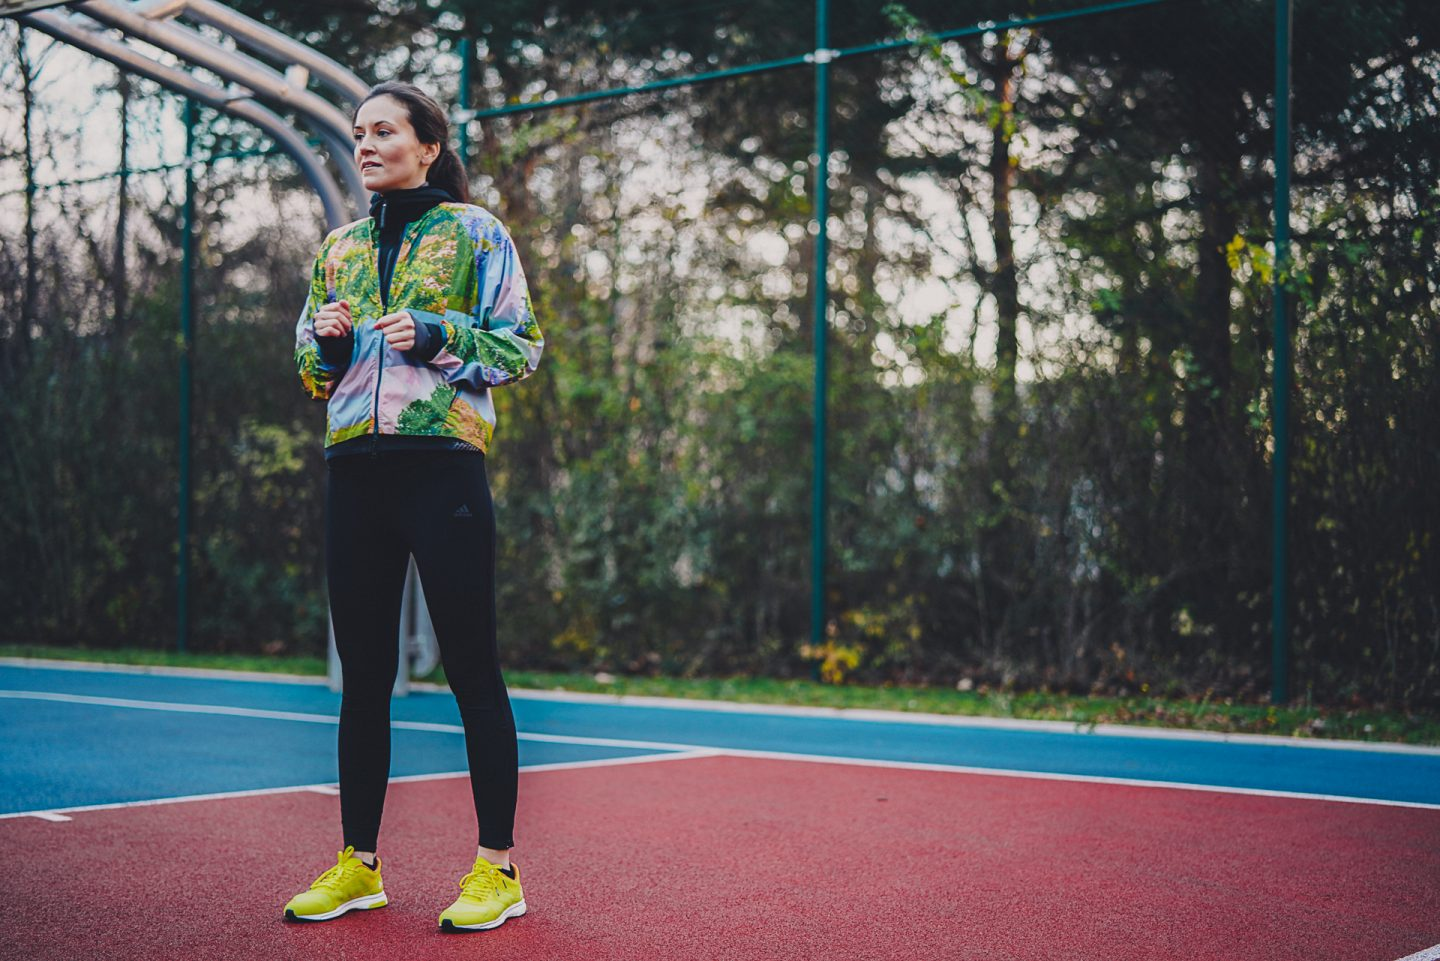 A woman wearing fitnss clothing stands tall in a tennis court with her held up under her chest. sport, fitness, training, thinking.